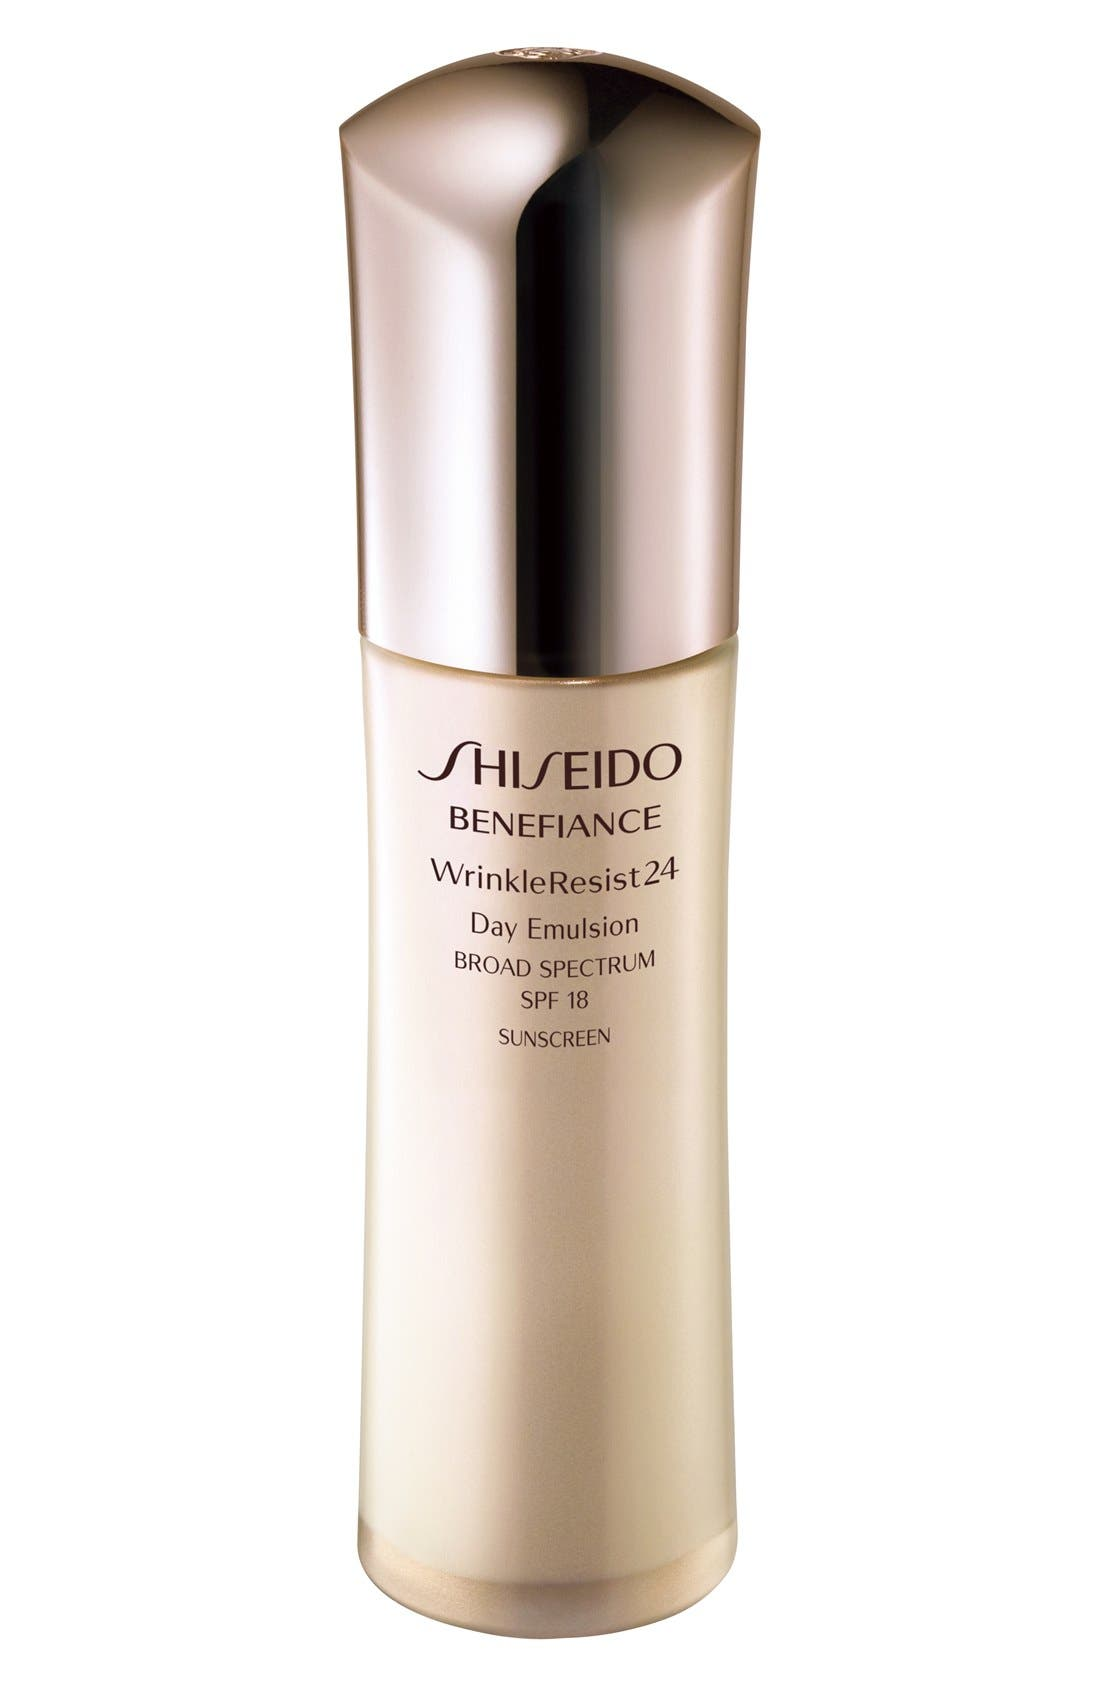 Shiseido 'Benefiance WrinkleResist24' Day Emulsion SPF 18